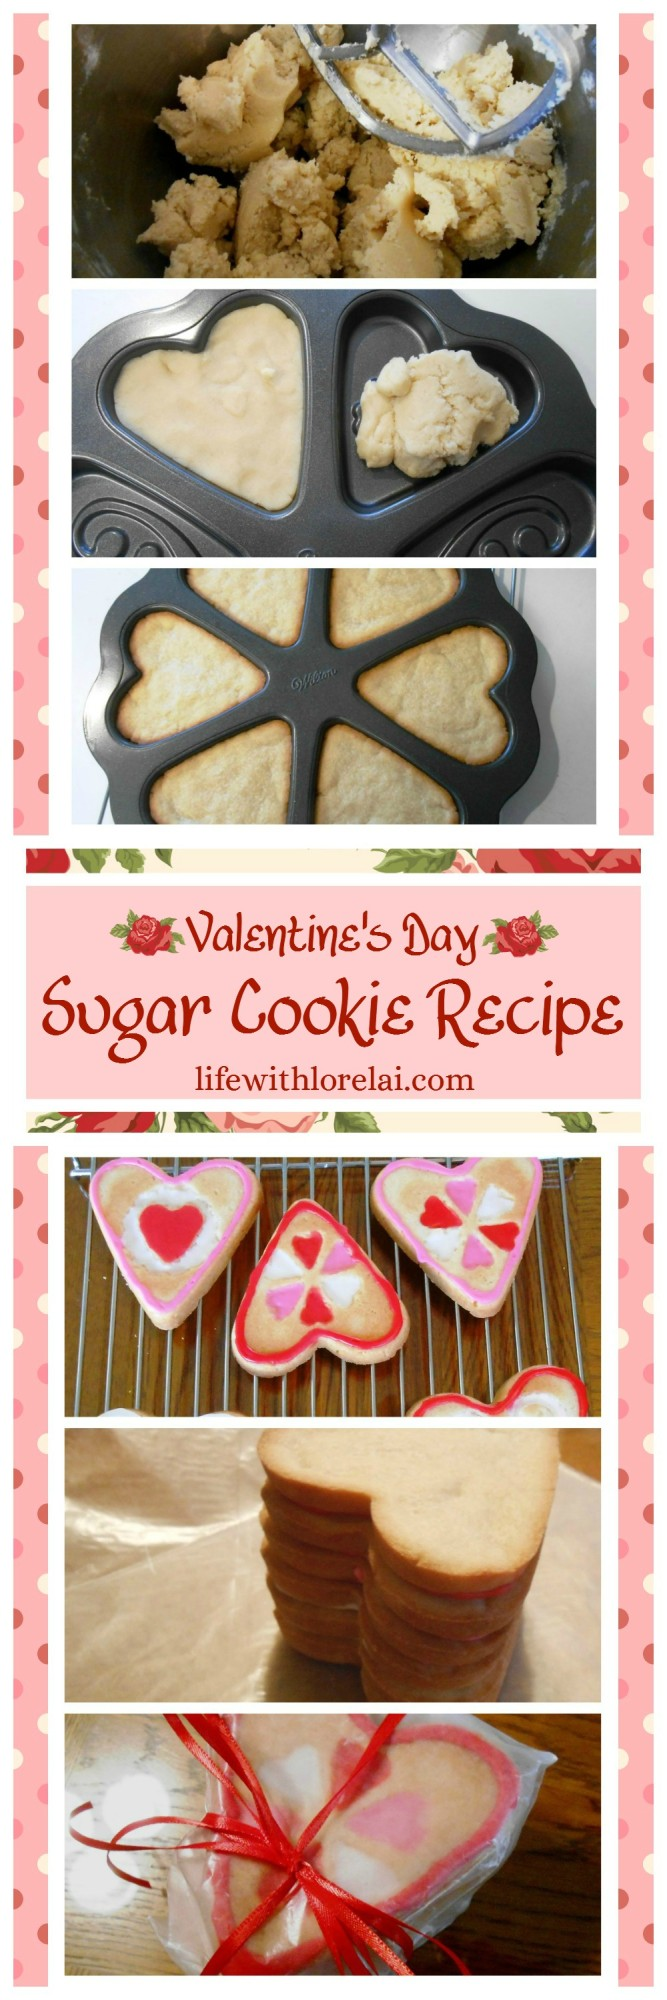 Valentine's Day Sugar Cookie Steps.Strip - Life With Lorelai